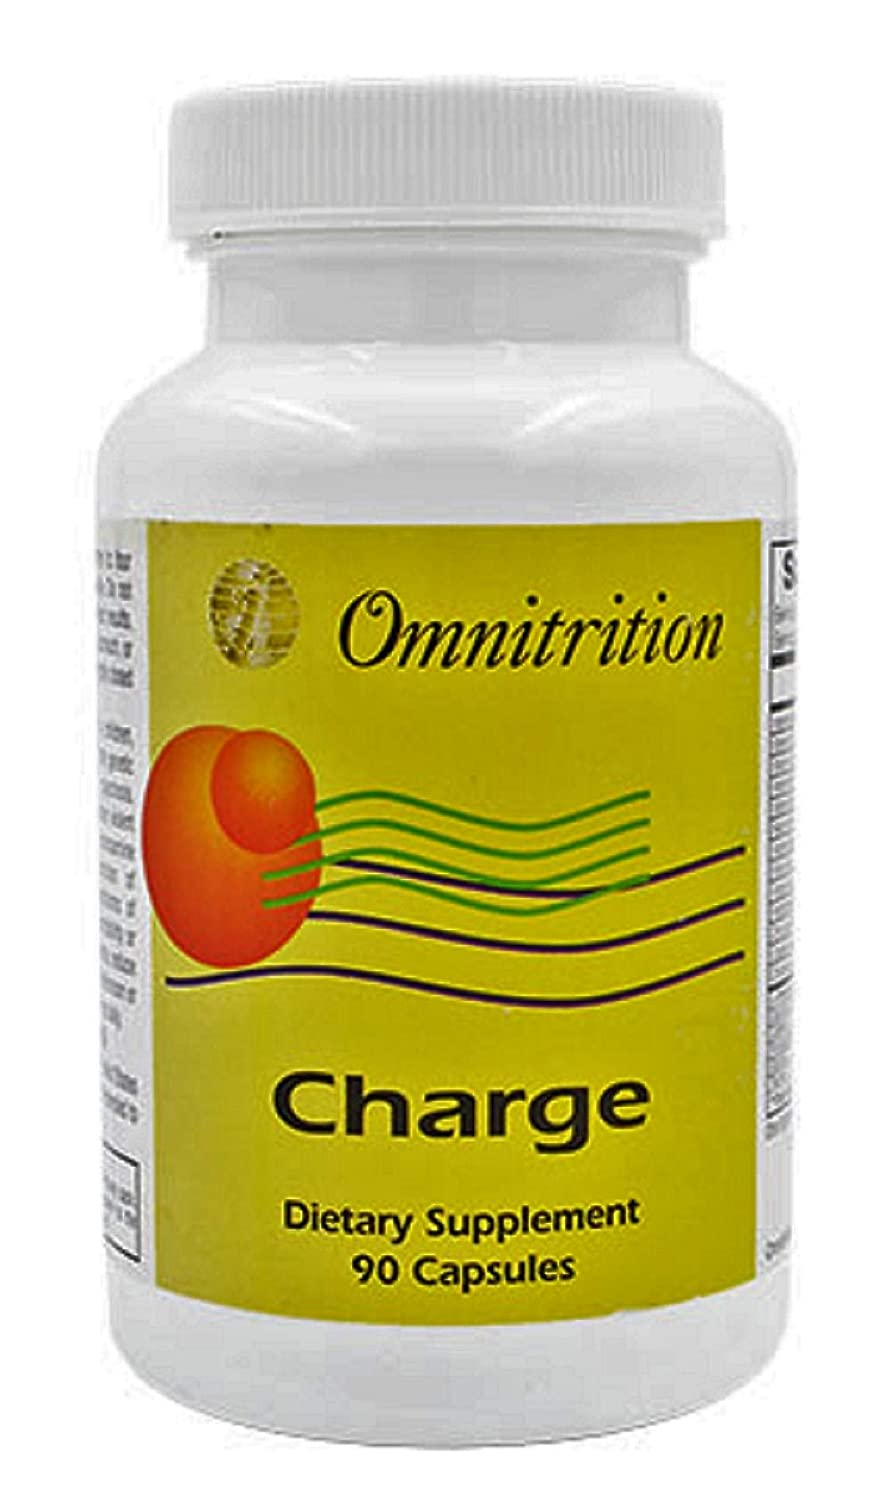 Charge Capsules With Caffeine Dietary Supplement – 90 Capsules